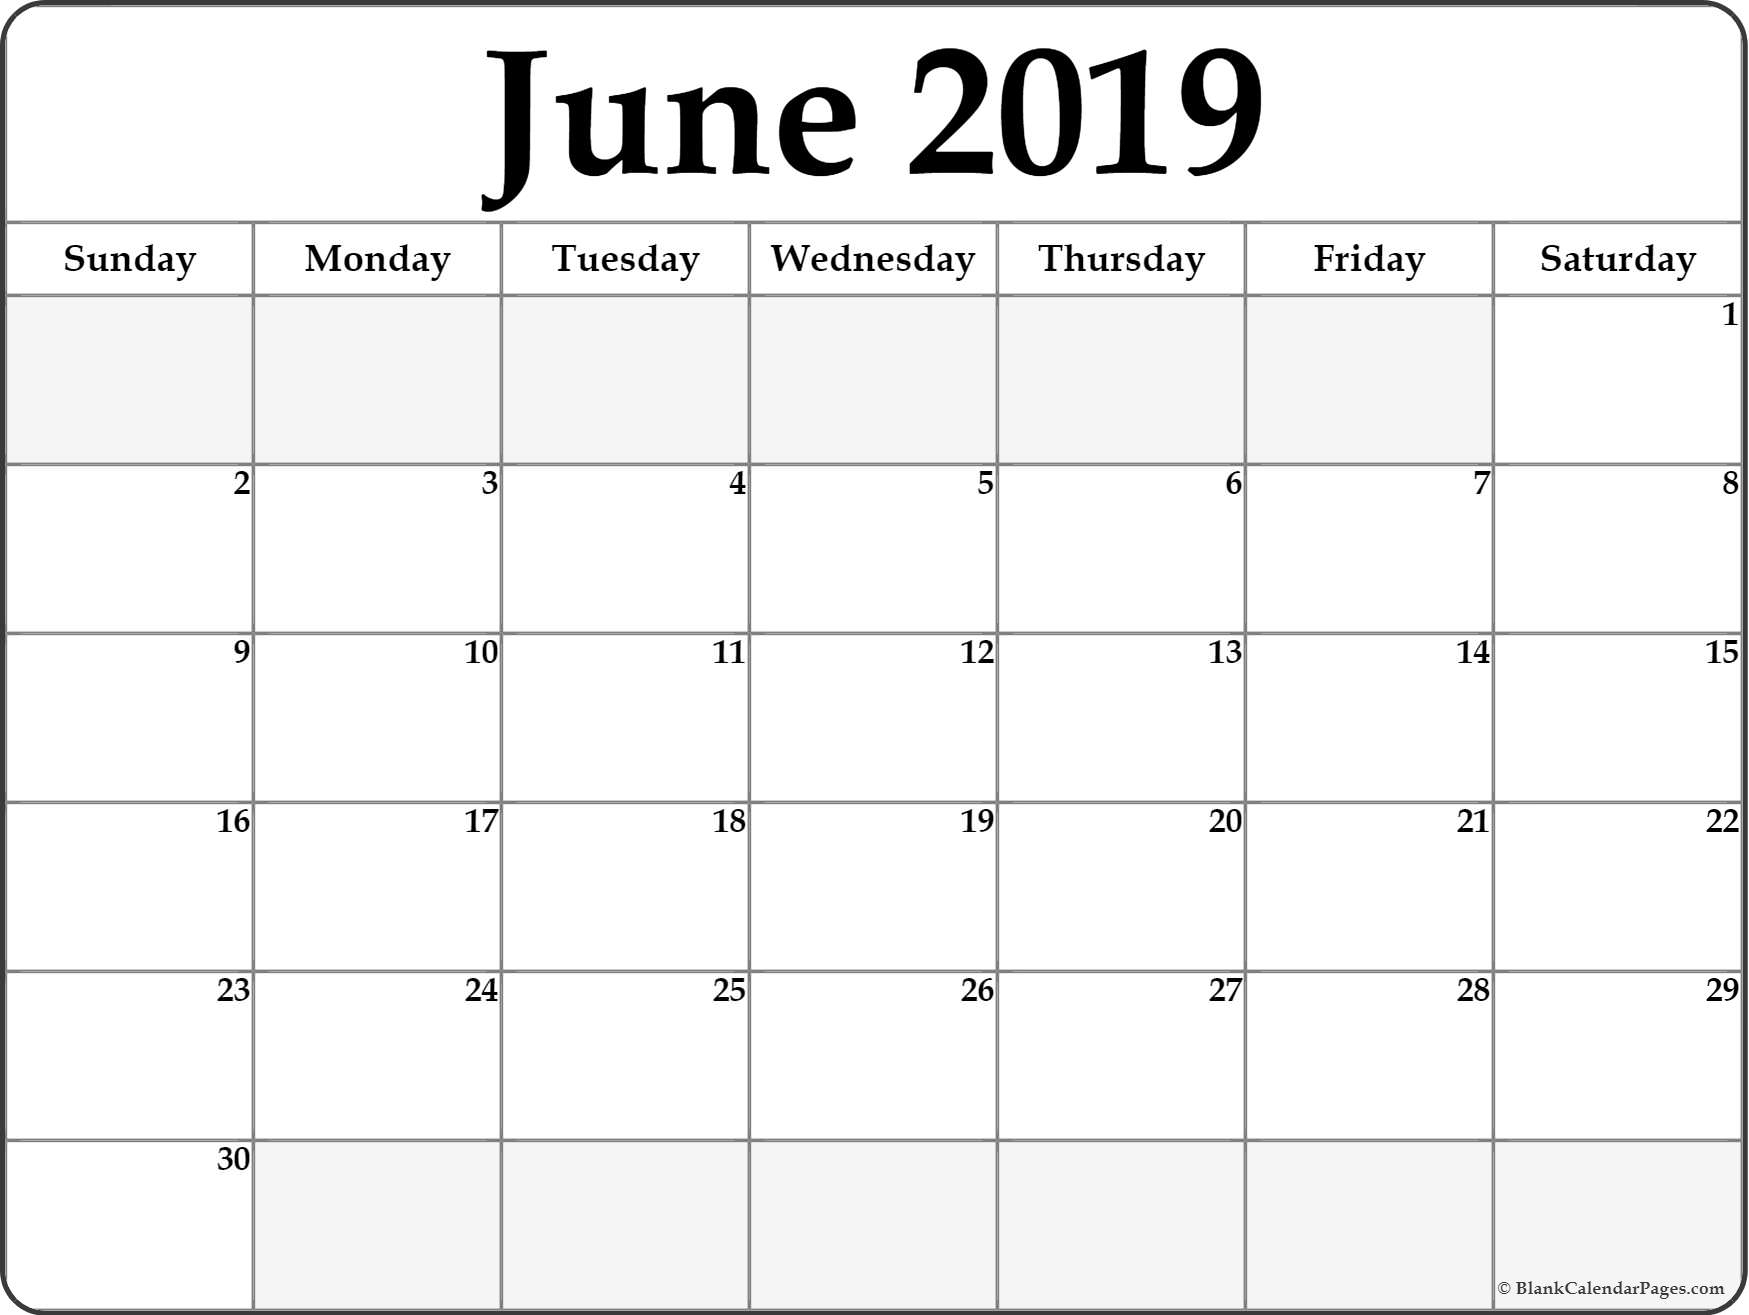 June 2019 Calendar | Free Printable Monthly Calendars in Print Off A Blank Calendar For